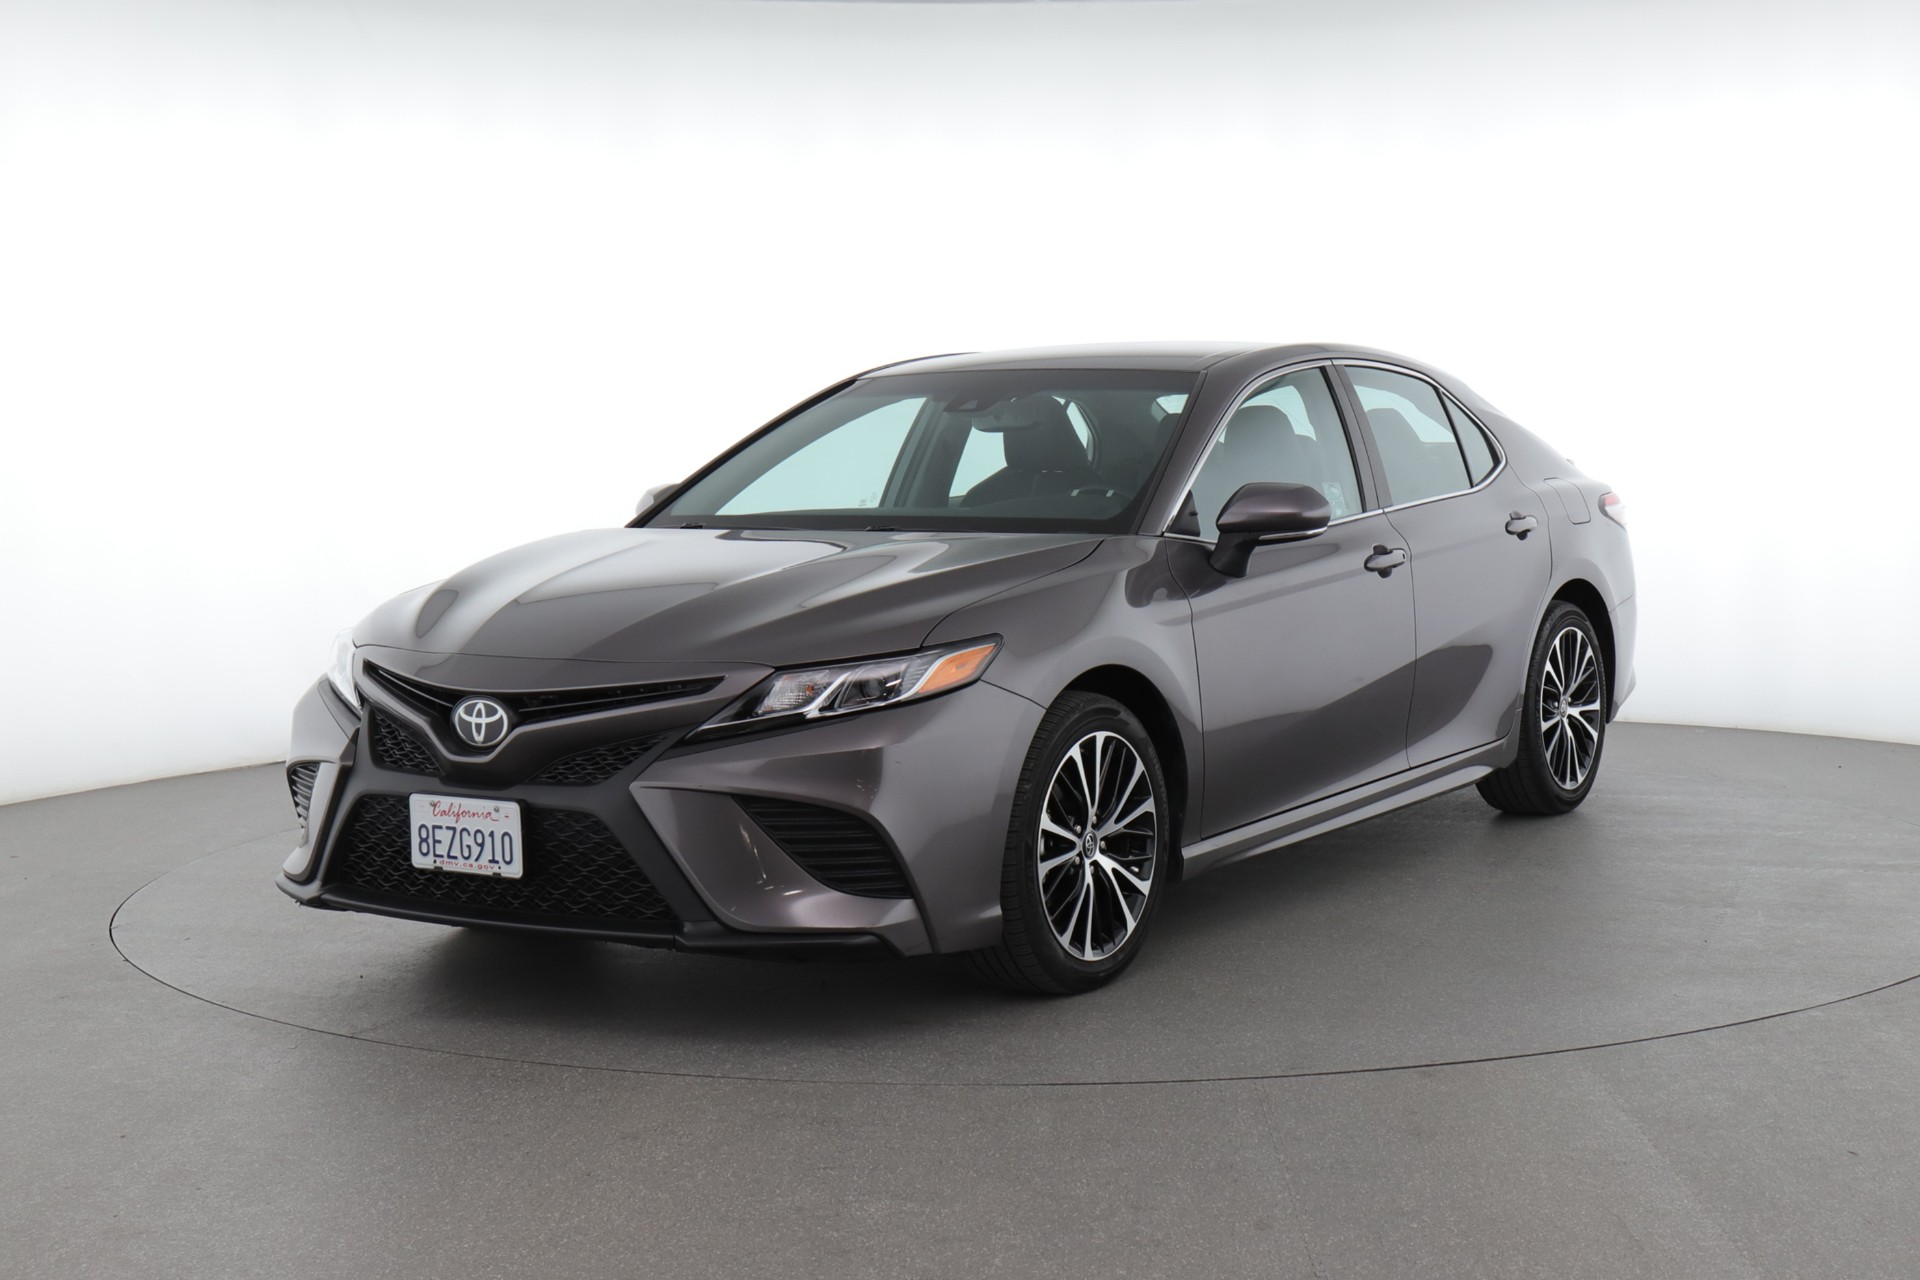 2018 Toyota Camry SE (from $22,300)